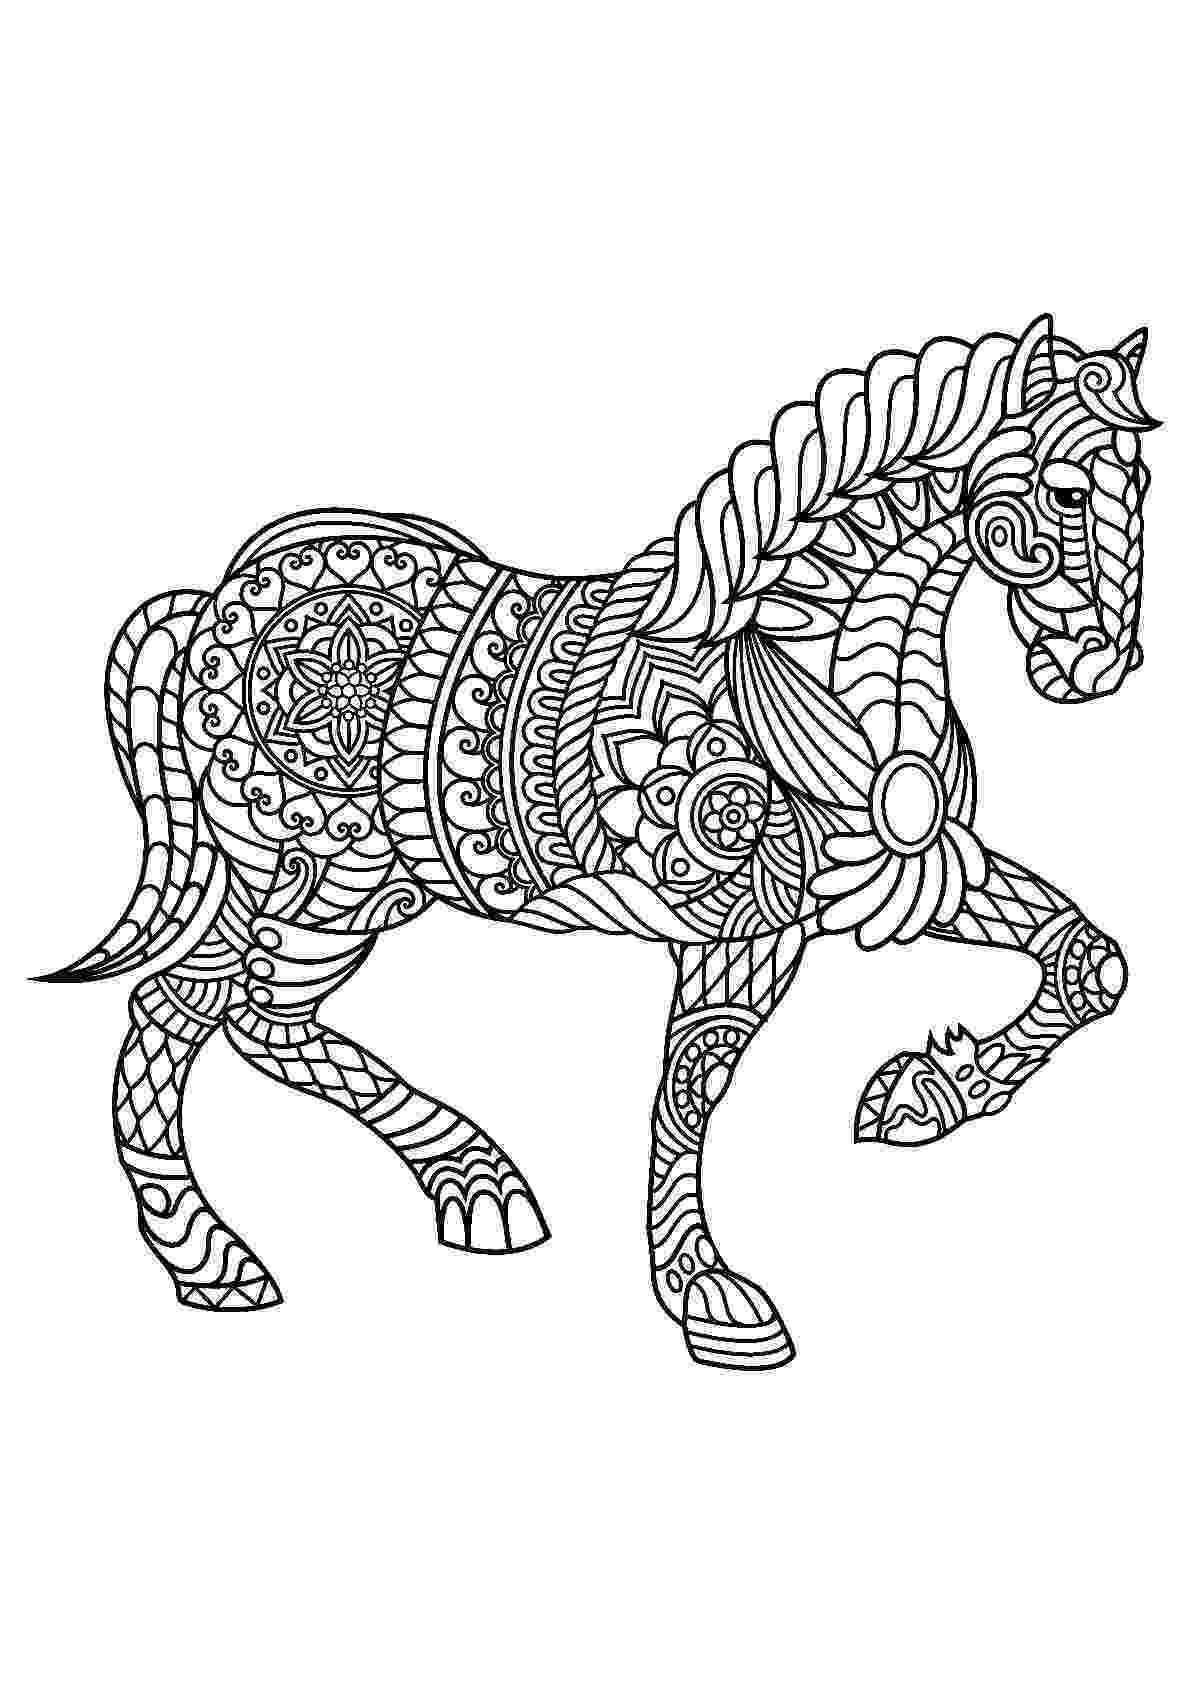 horse coloring sheets to print 30 best horse coloring pages ideas we need fun print sheets to coloring horse